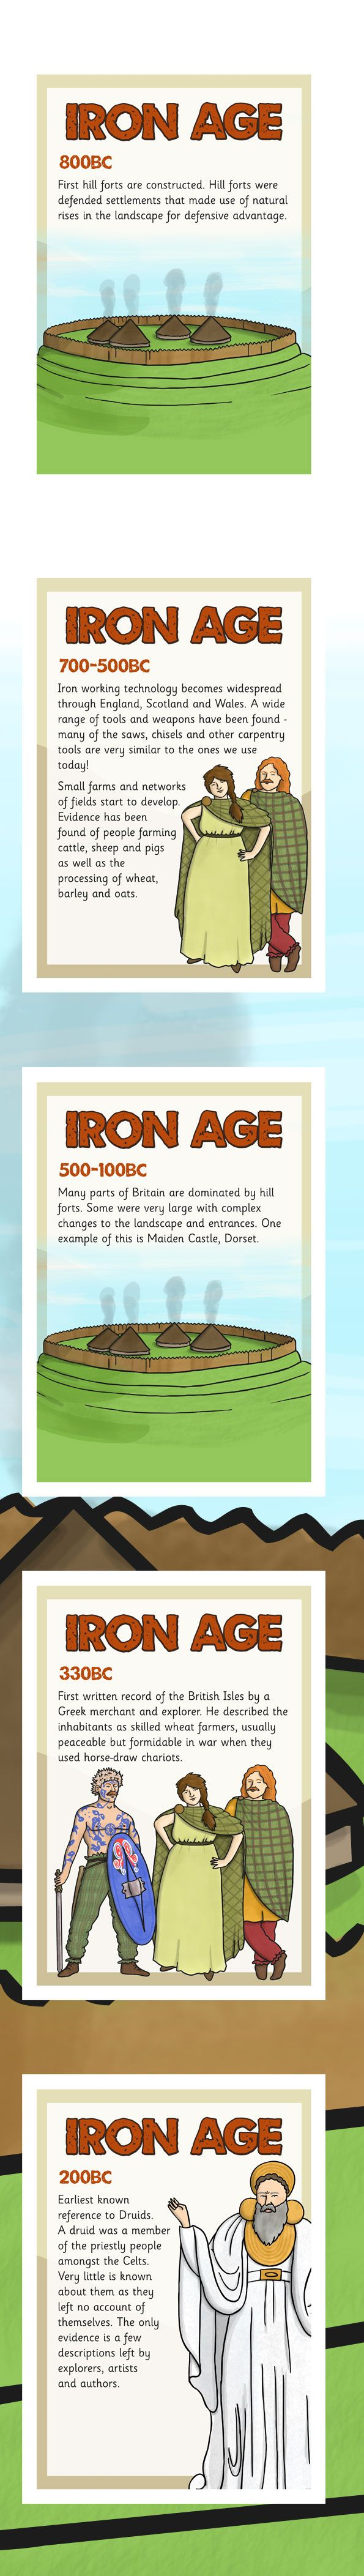 KS2 History Timelines The Iron Age Timeline Posters